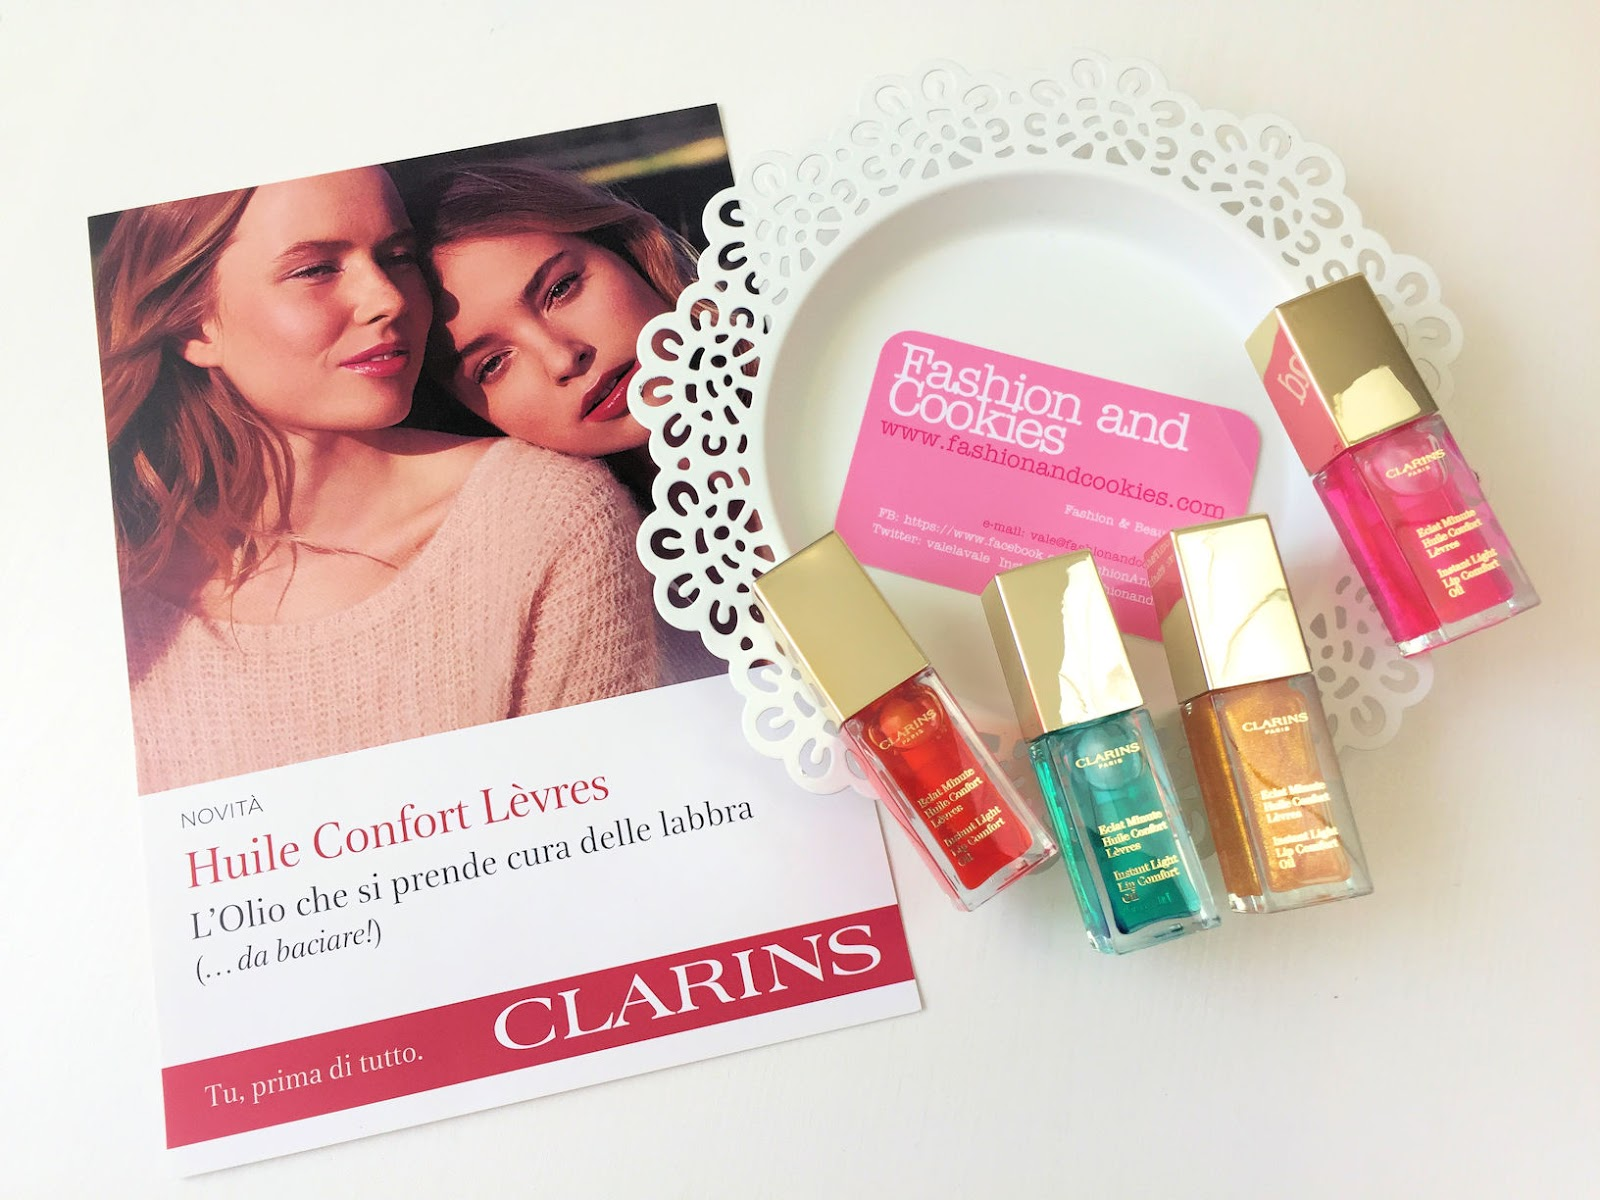 Clarins Huile Confort Levrès review on Fashion and Cookies beauty blog, beauty blogger